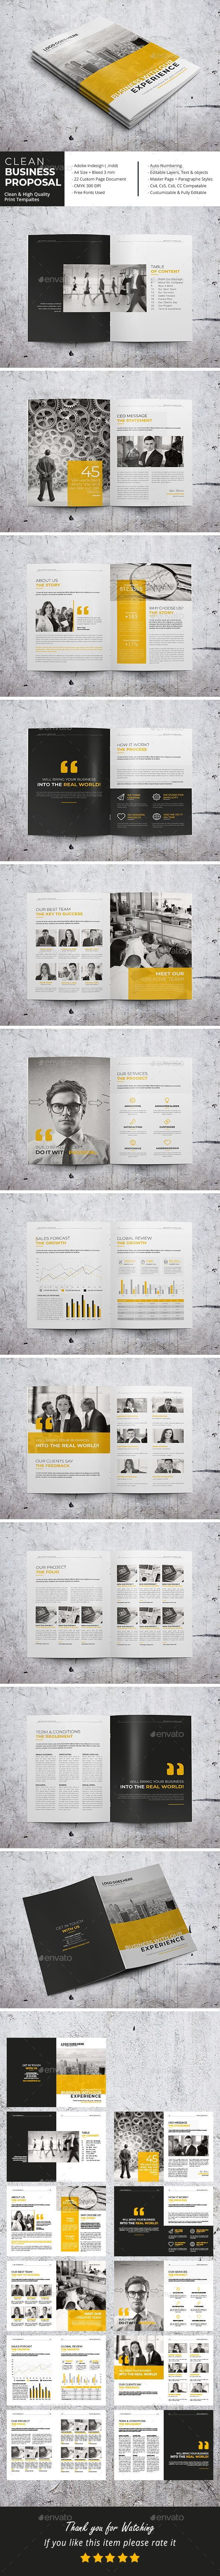 Clean Business Proposal Brochure Template InDesign INDD